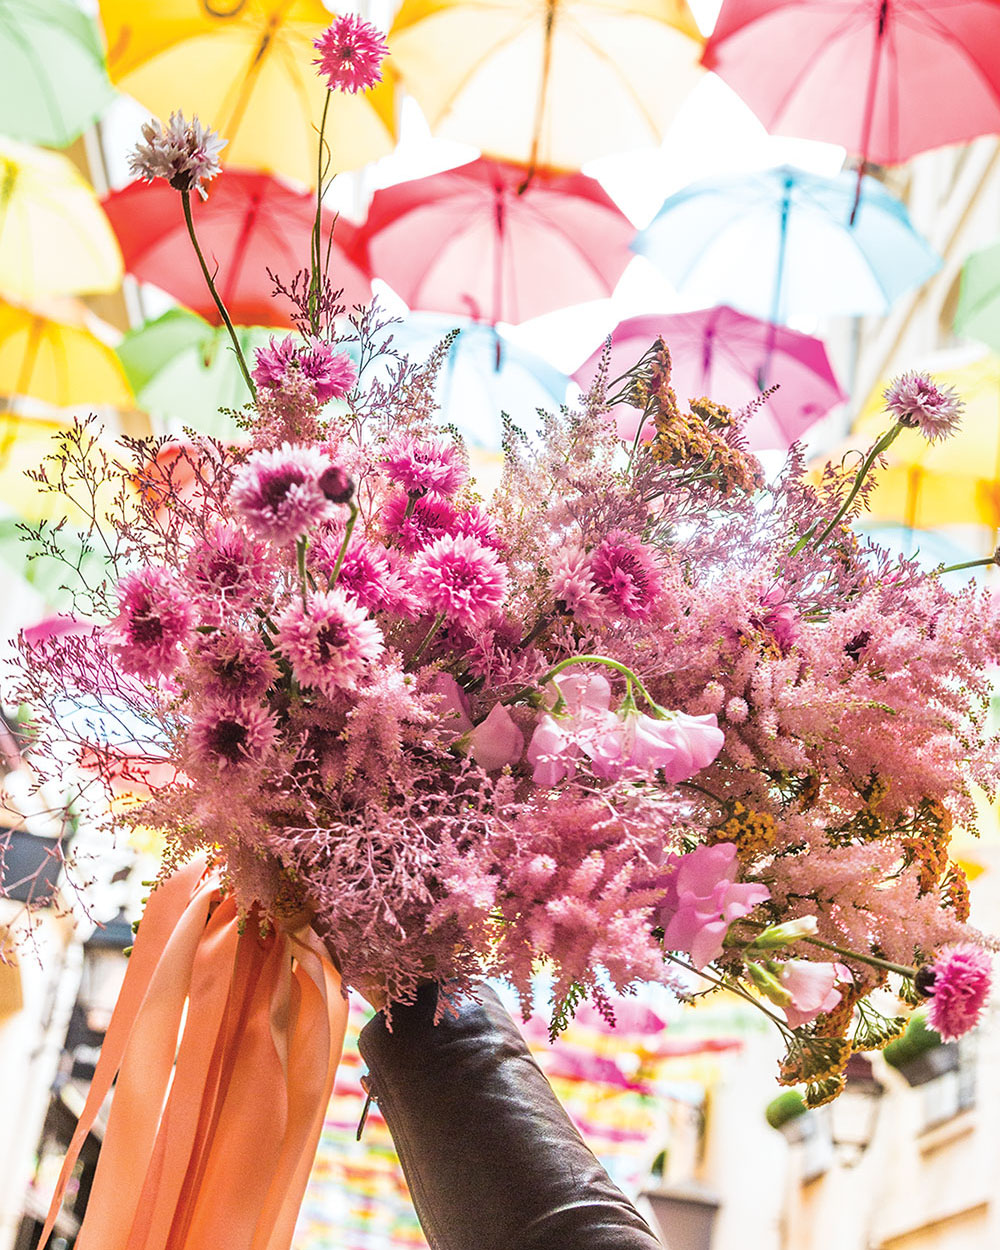 A hand holds lush pink bouquet tied with streaming peach ribbon against a colorful sky of suspended umbrellas